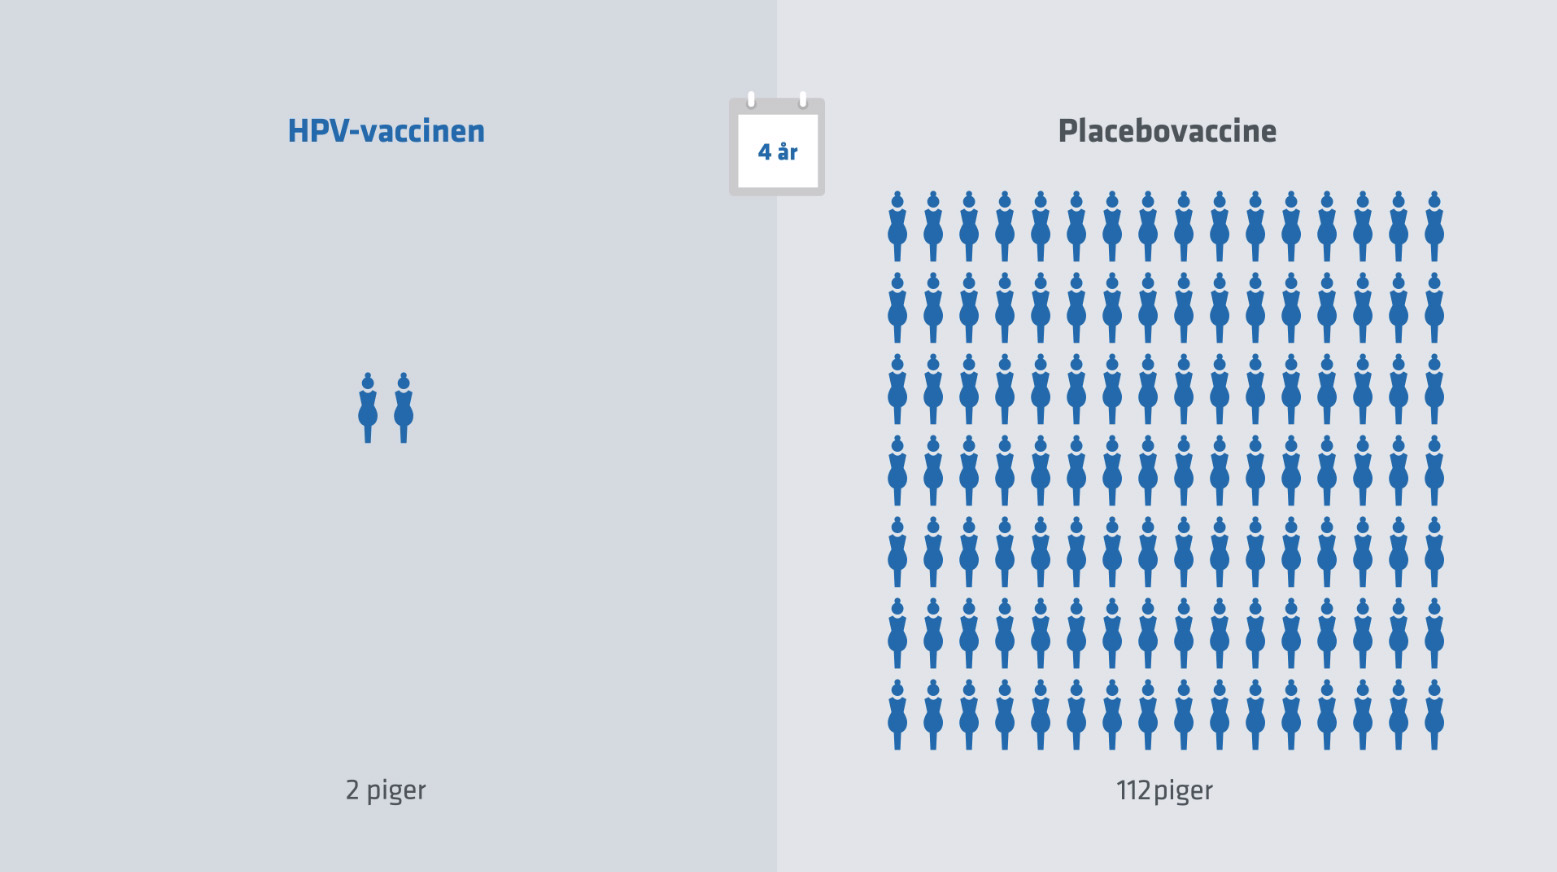 hpv vaccine does it work papillary sclerosing lesion breast